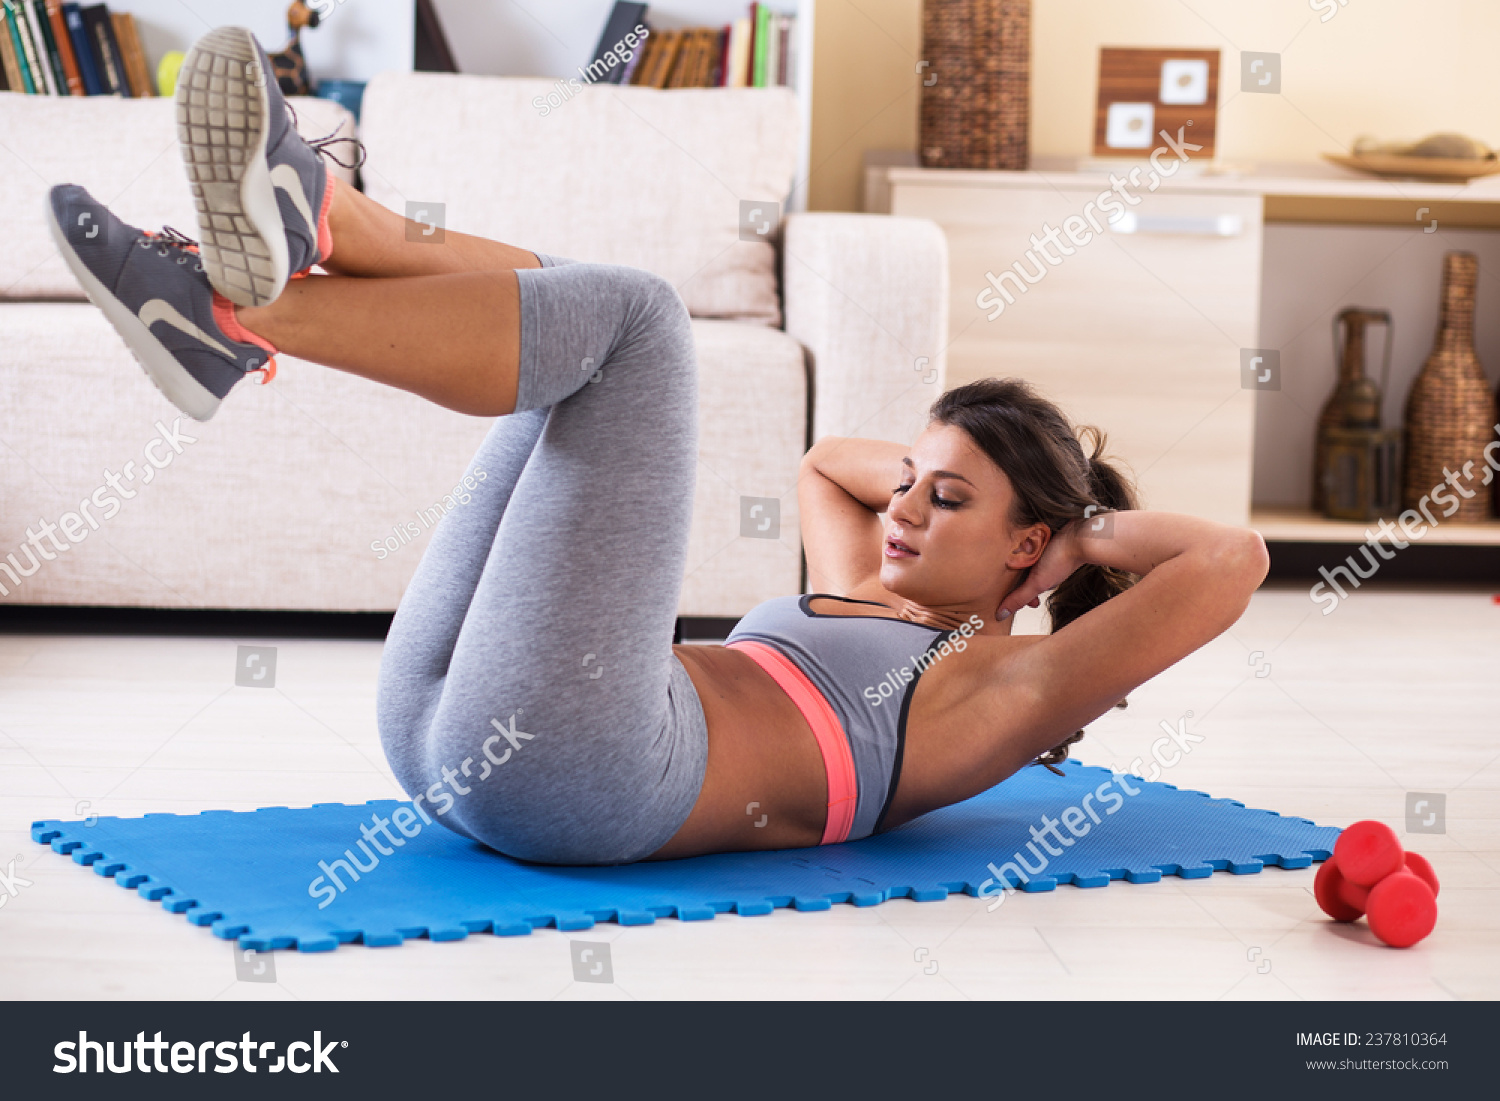 Attractive Female Doing Exercise In Her Living RoomShe AbsWorkout